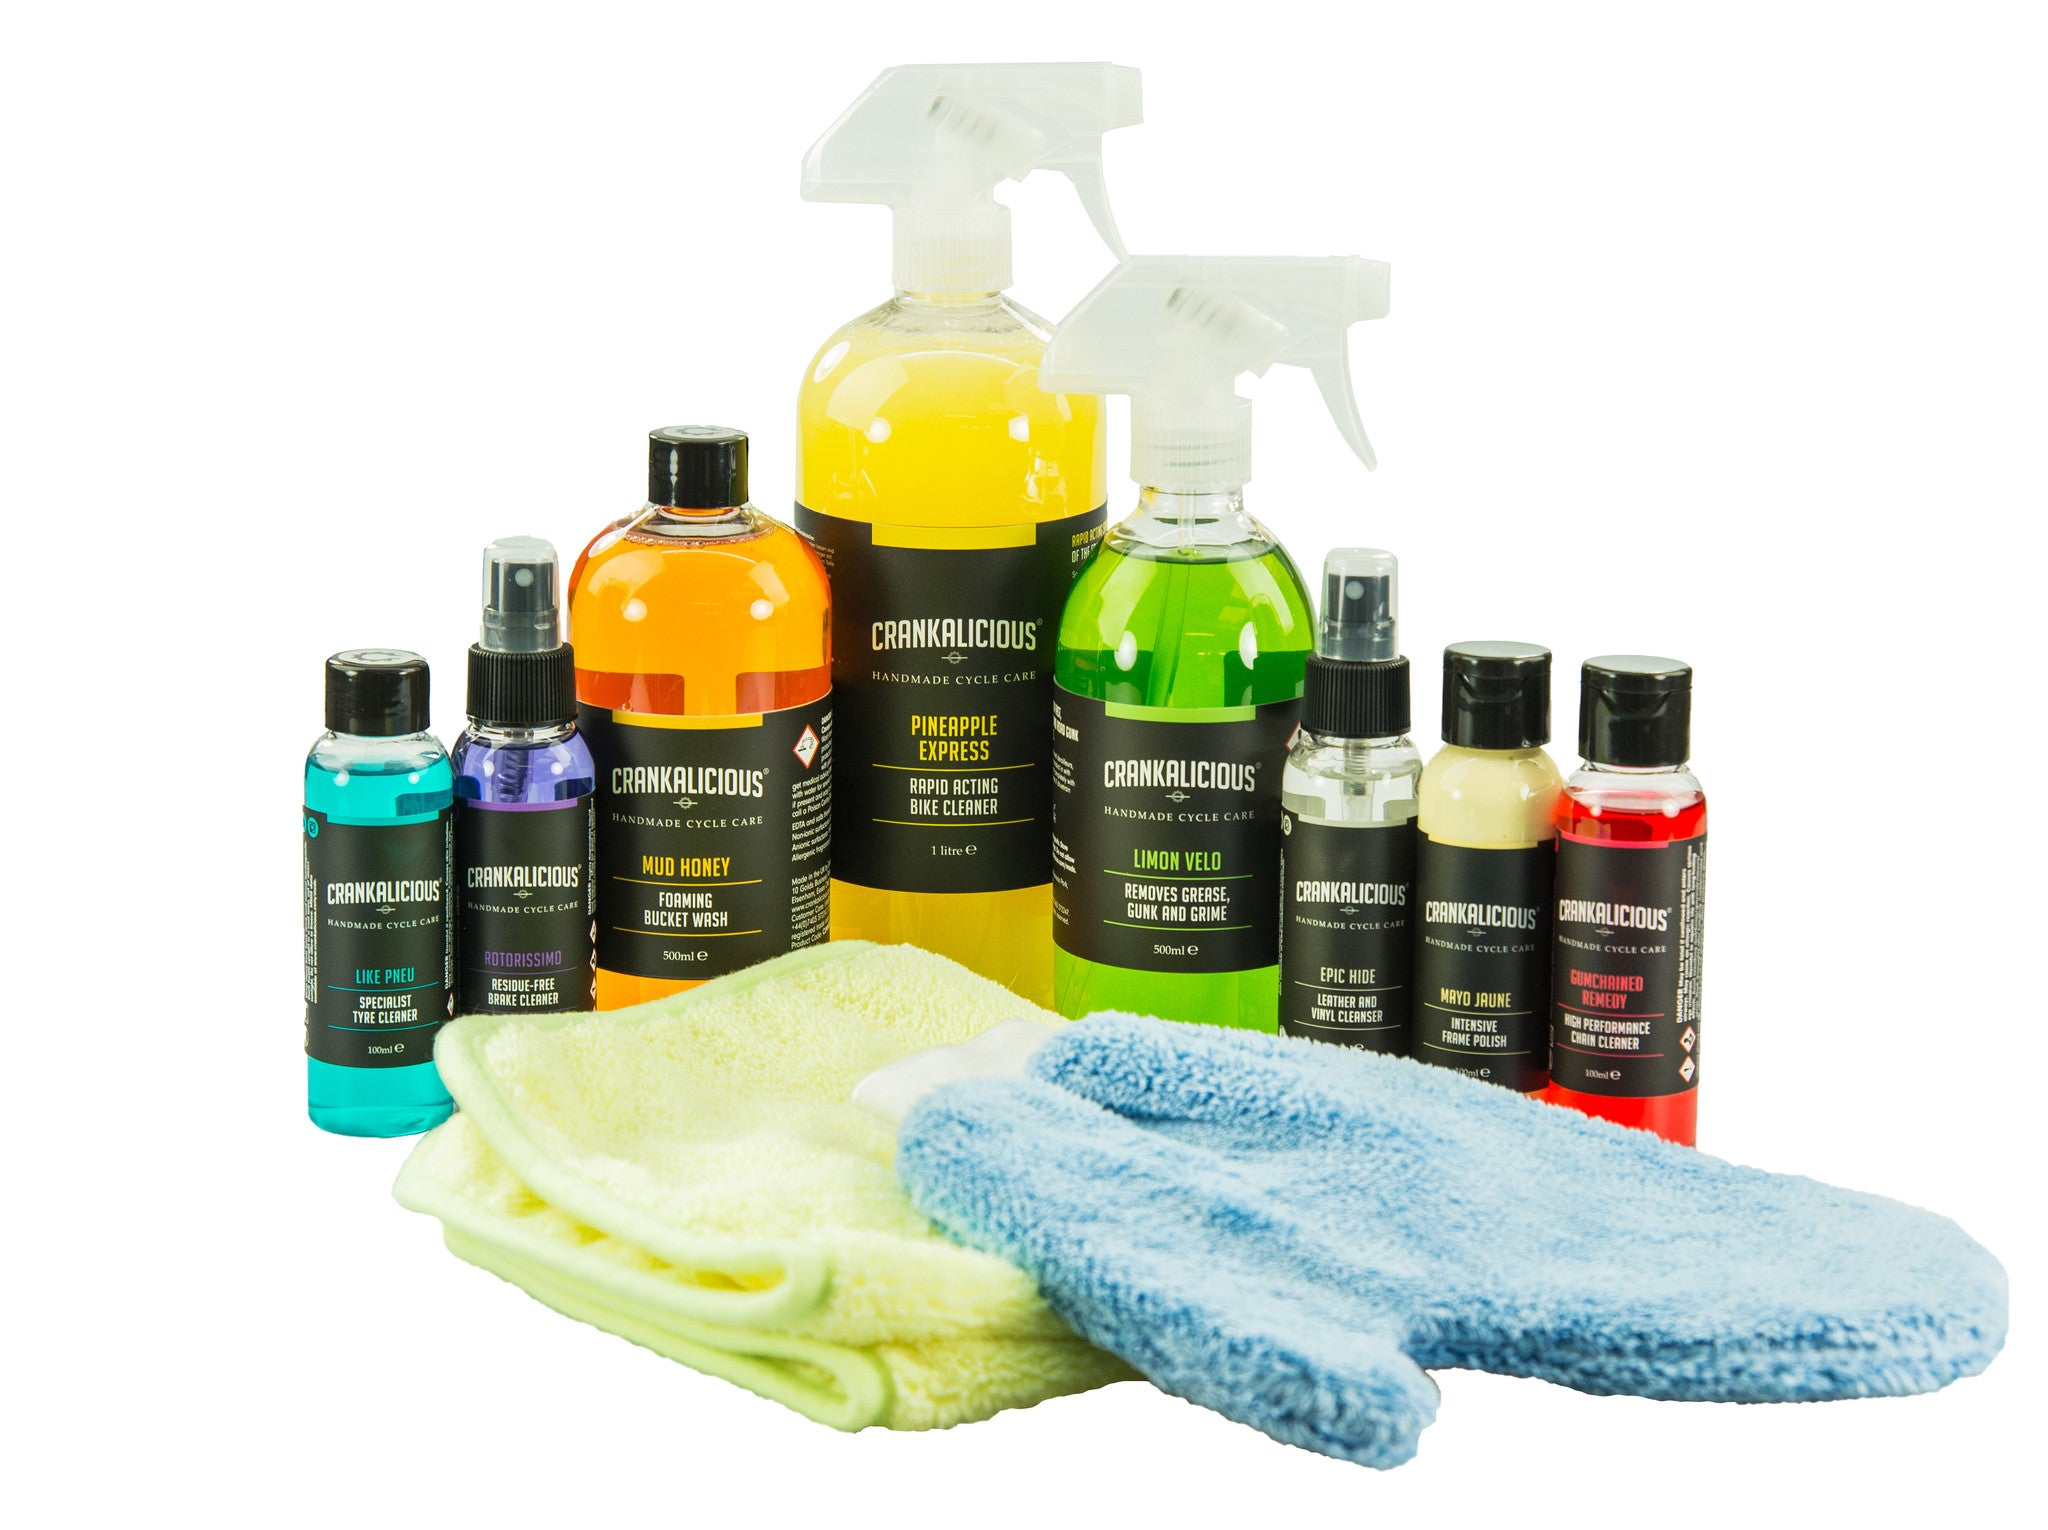 Products Crankalicious Sealant Guard 100 Ml Spray Detailing Cleaning Kit